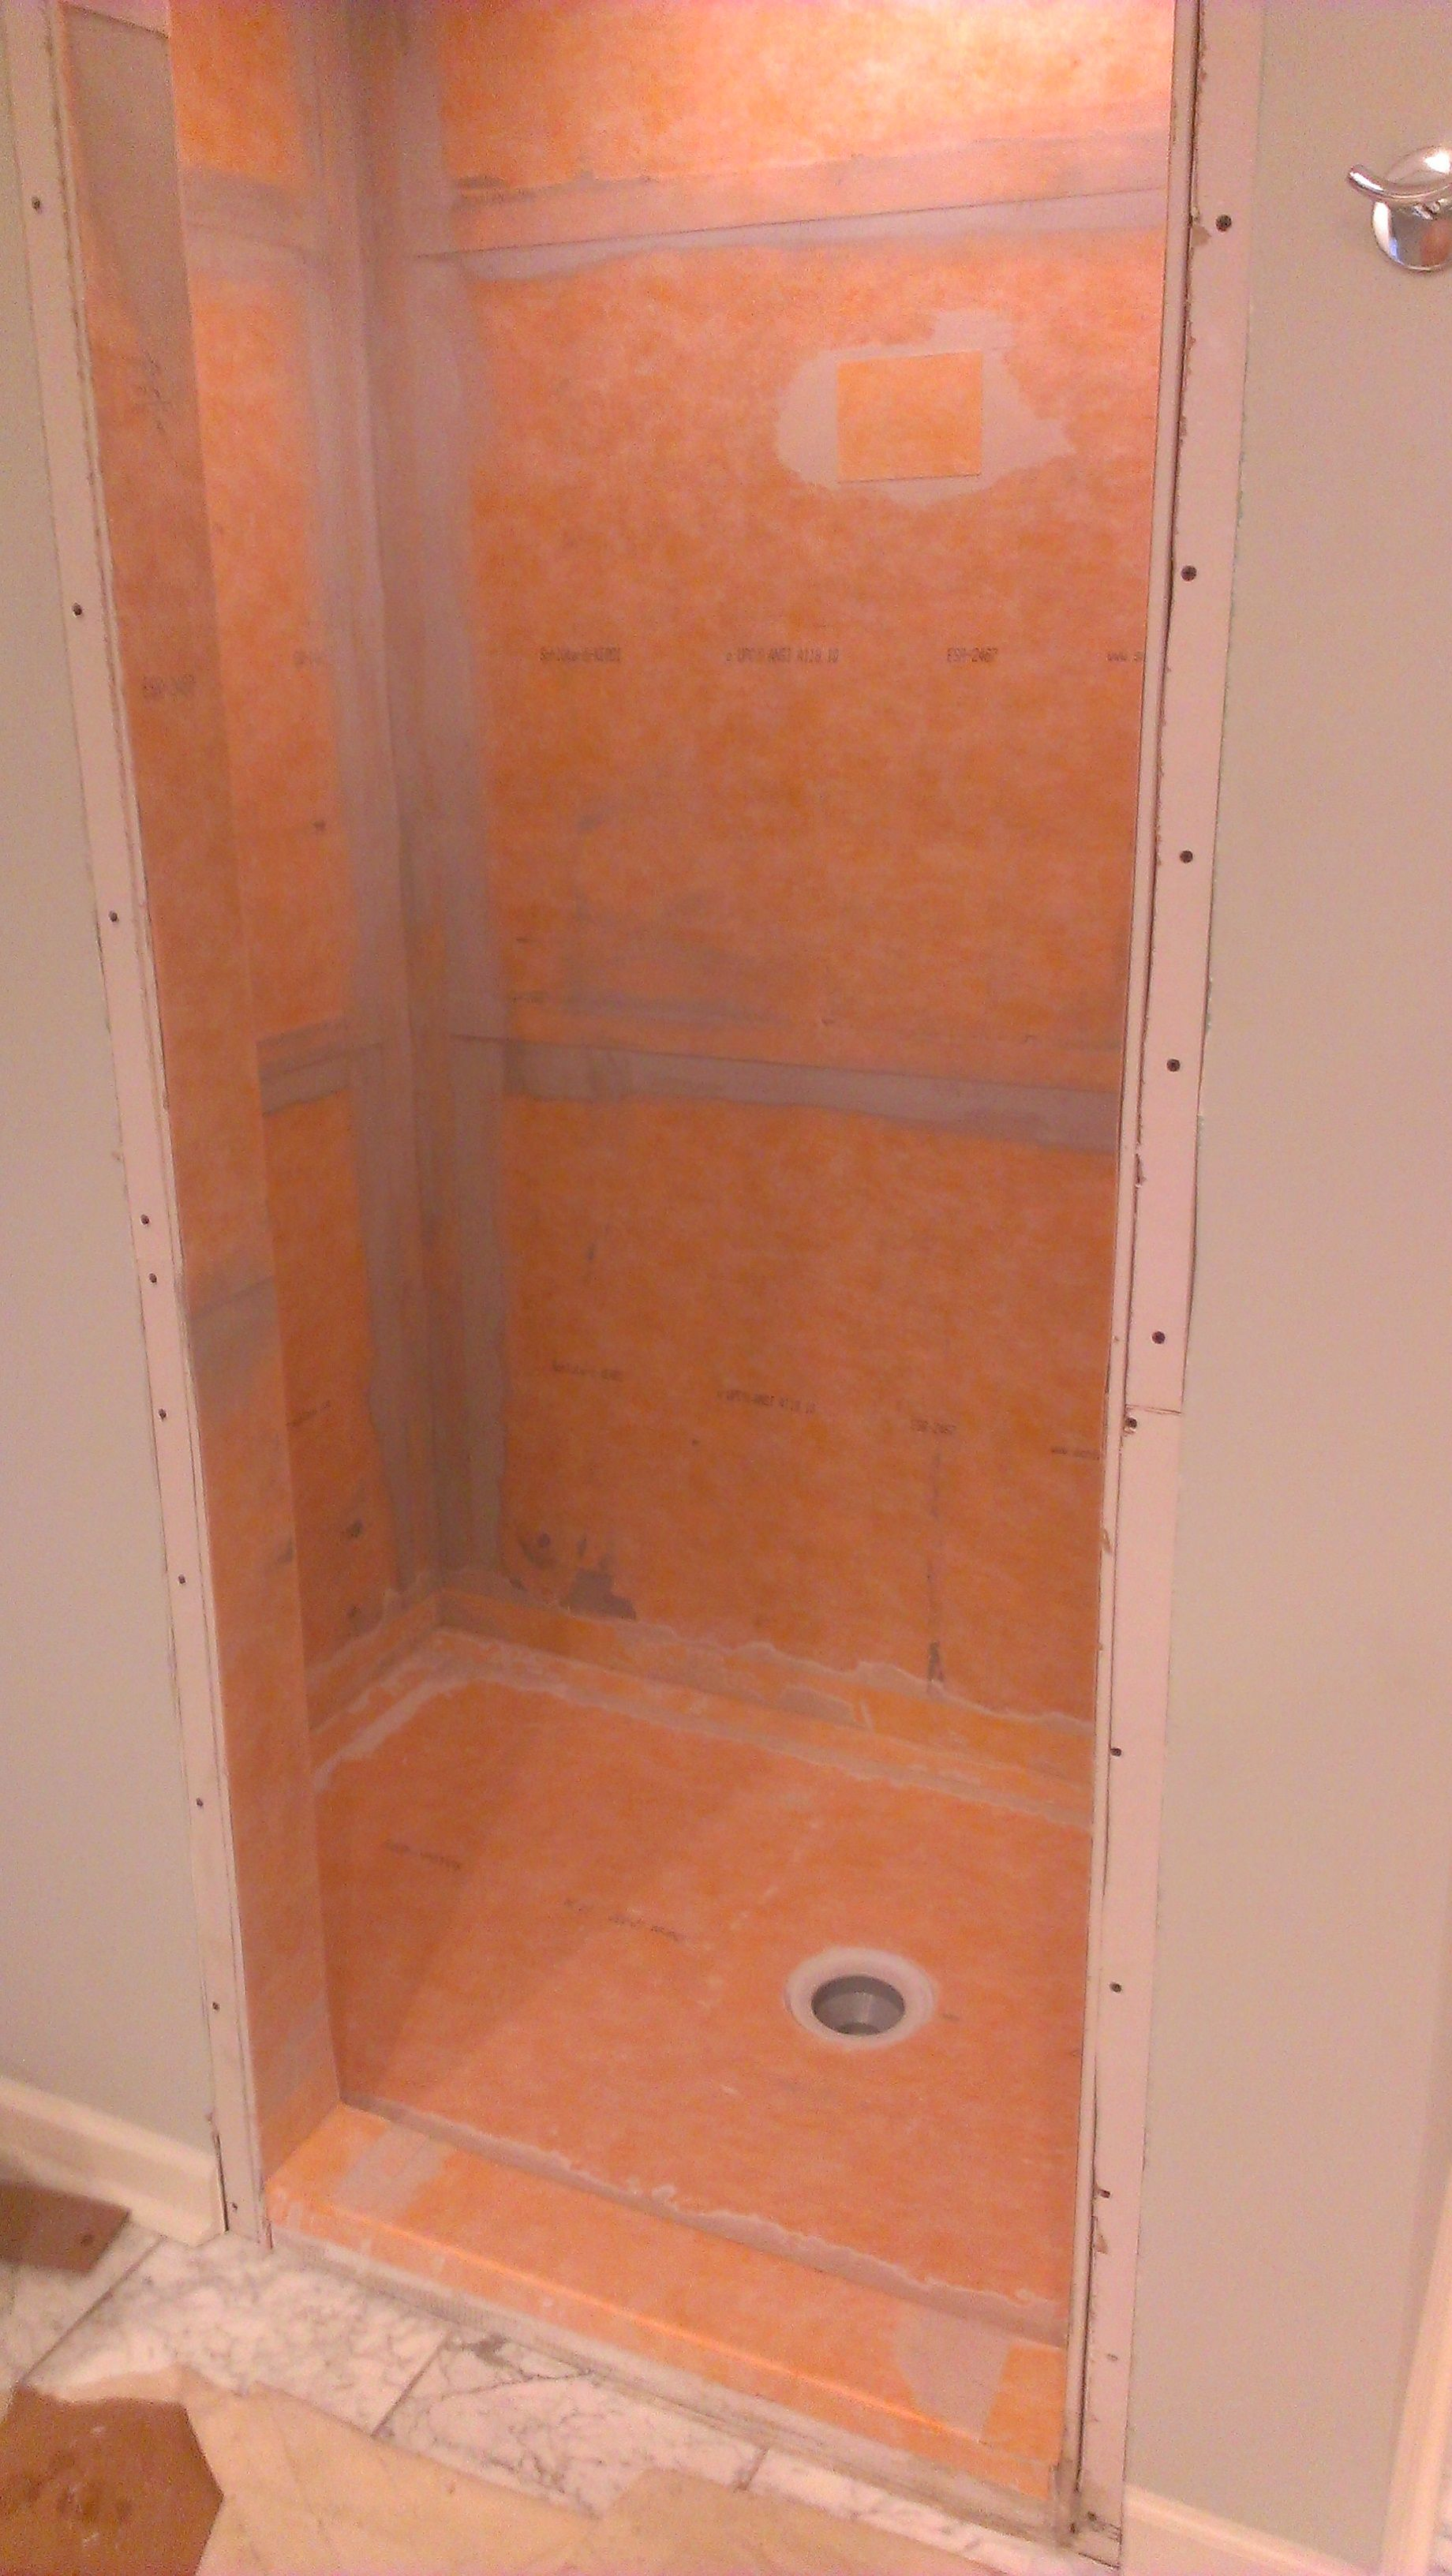 The Schluter Kerdi Waterproofing System For A Tile Shower Shower Remodel Tile Bathroom Bathroom